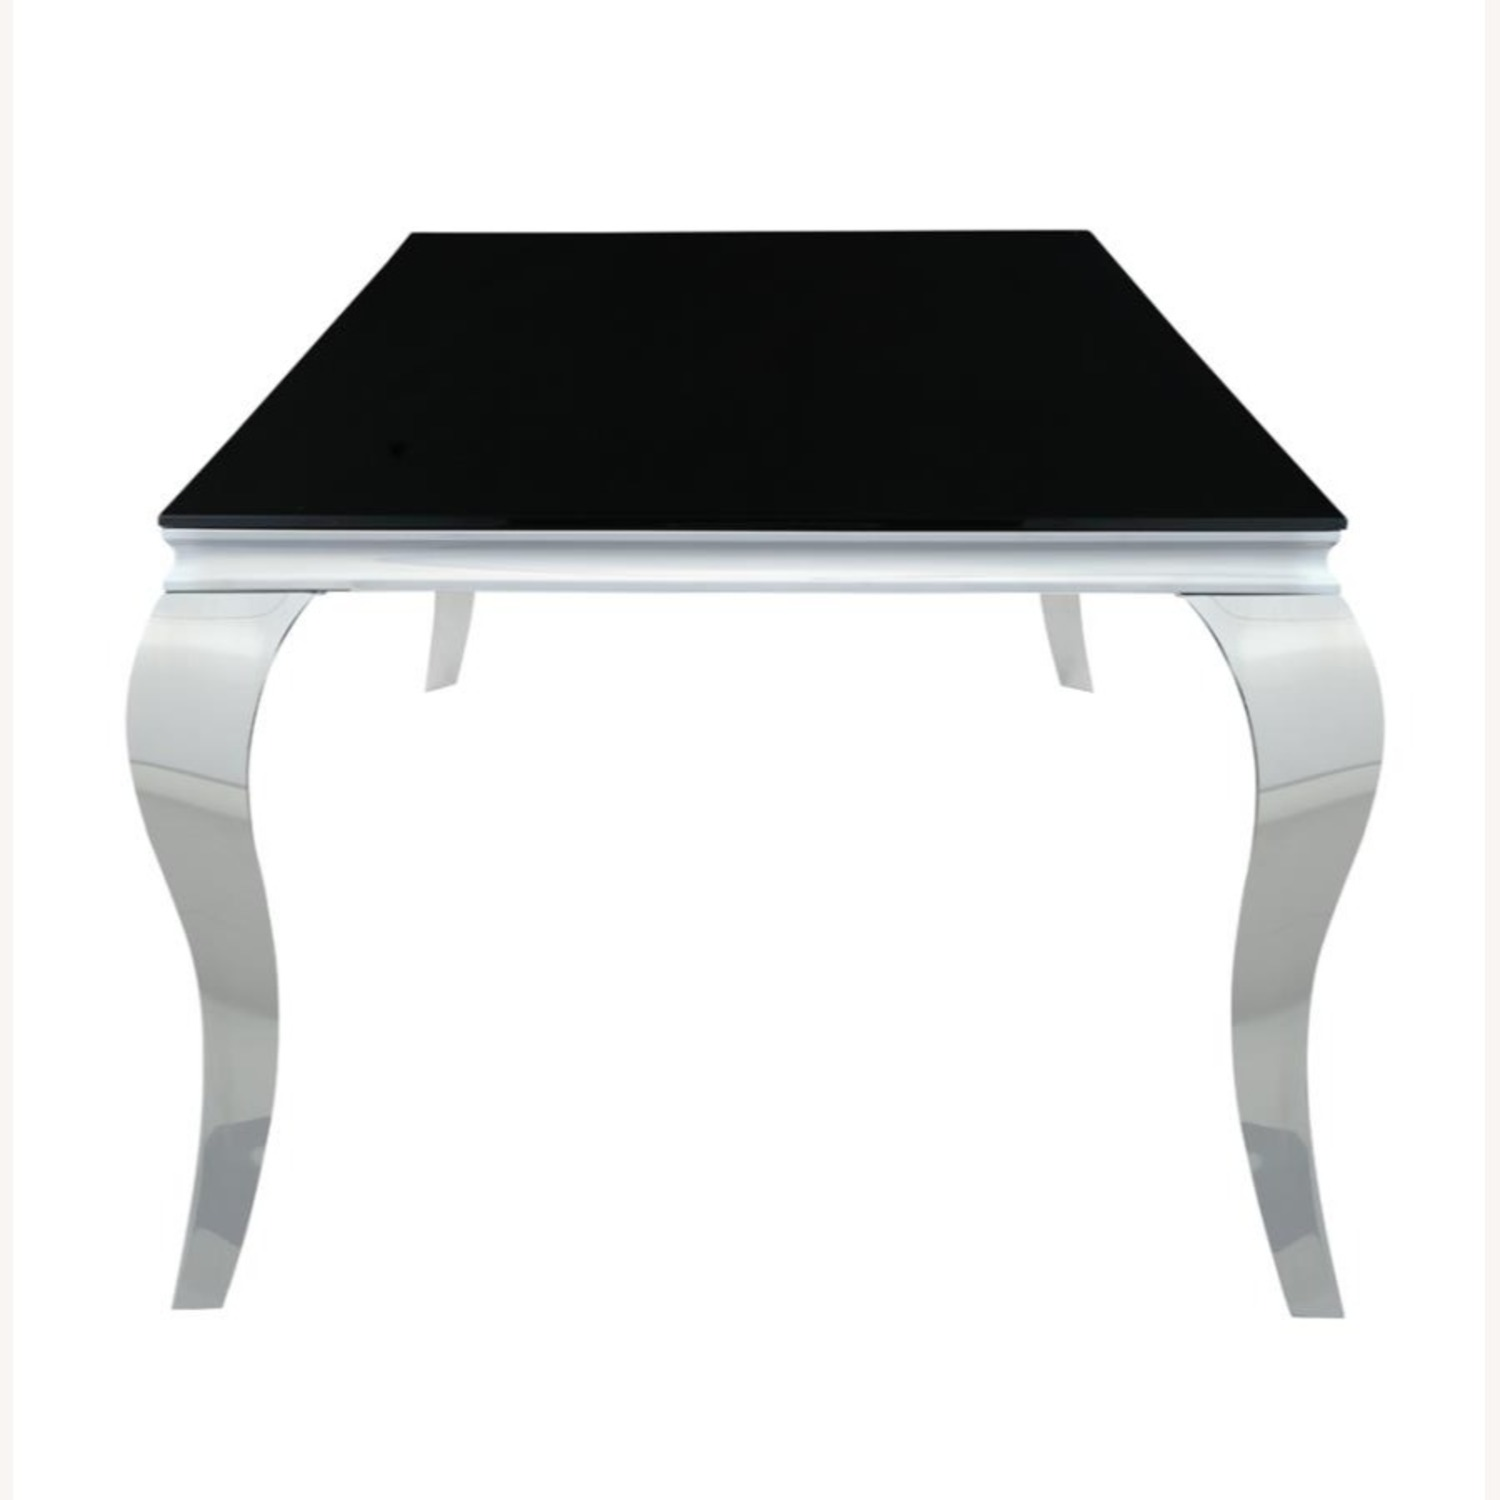 Dining Table In Chrome Finish W/ Black Top - image-2